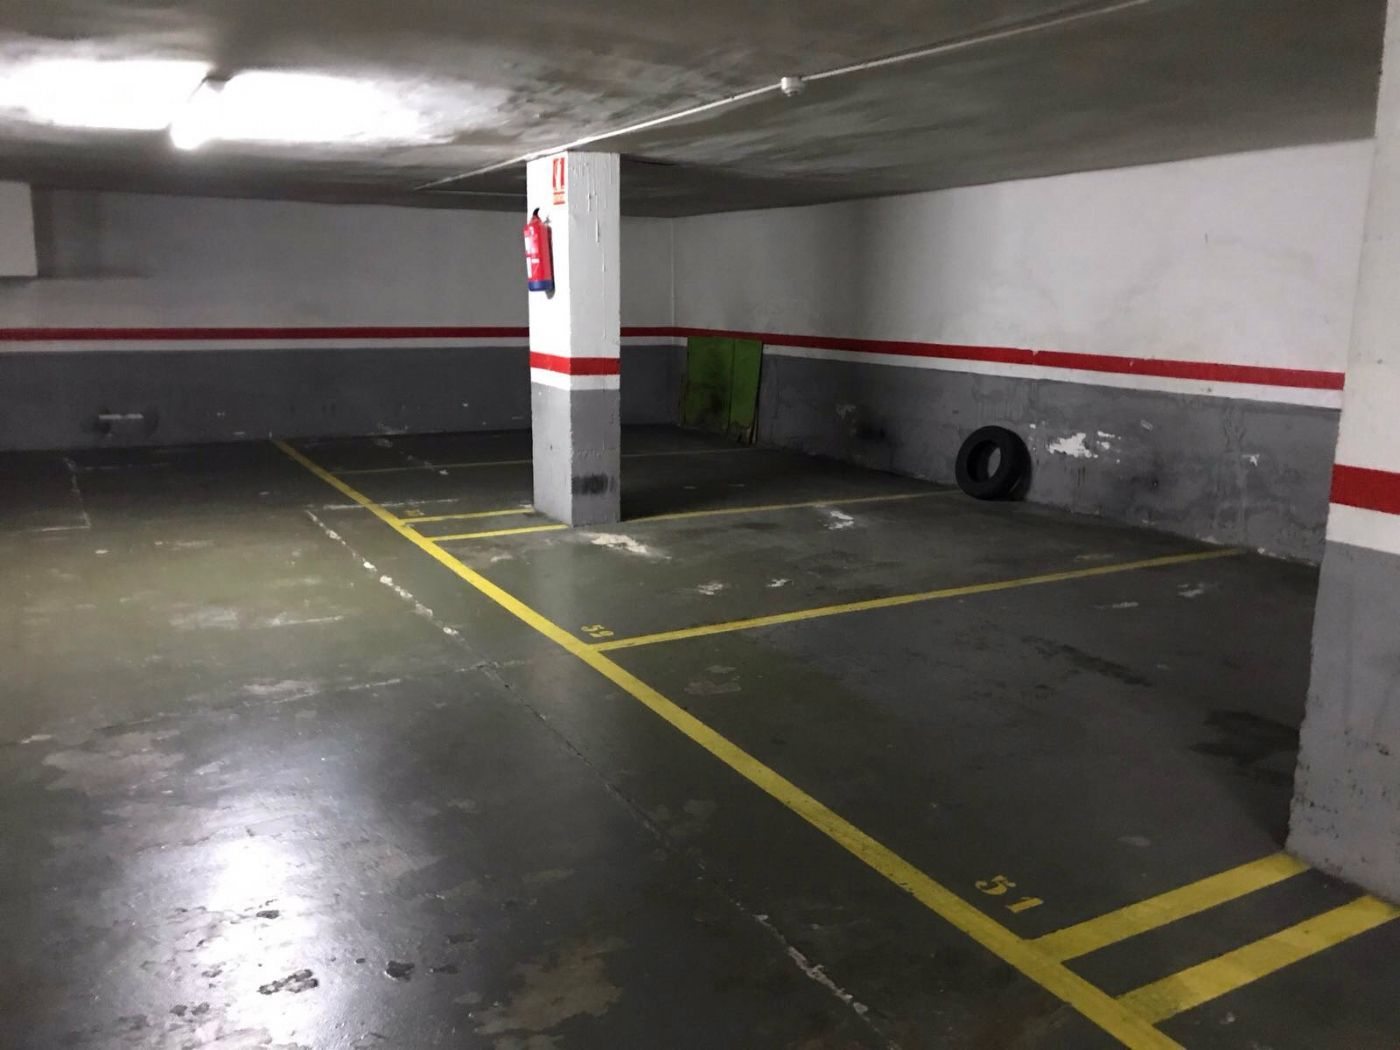 Parking voiture  Carrer maluquer. Lote de 12 plazas